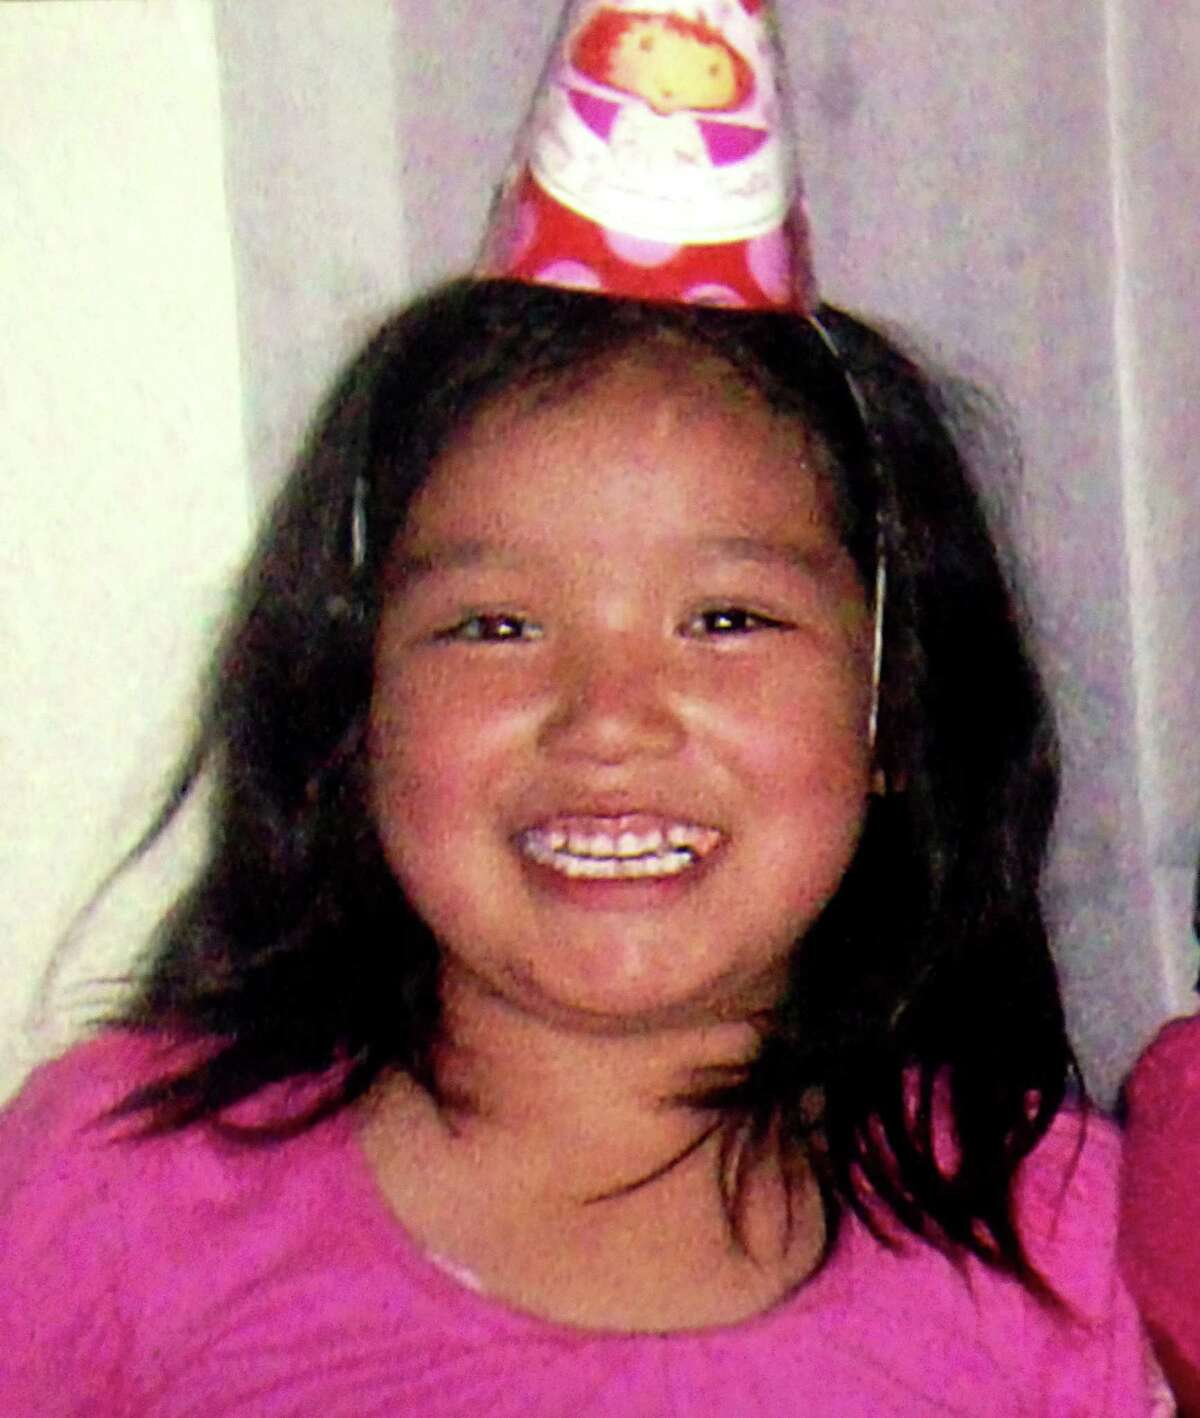 Leslie Roman, 6, was hit by a car and killed in 2009. She had been riding her bicycle with friends in the parking lot of an apartment complex.